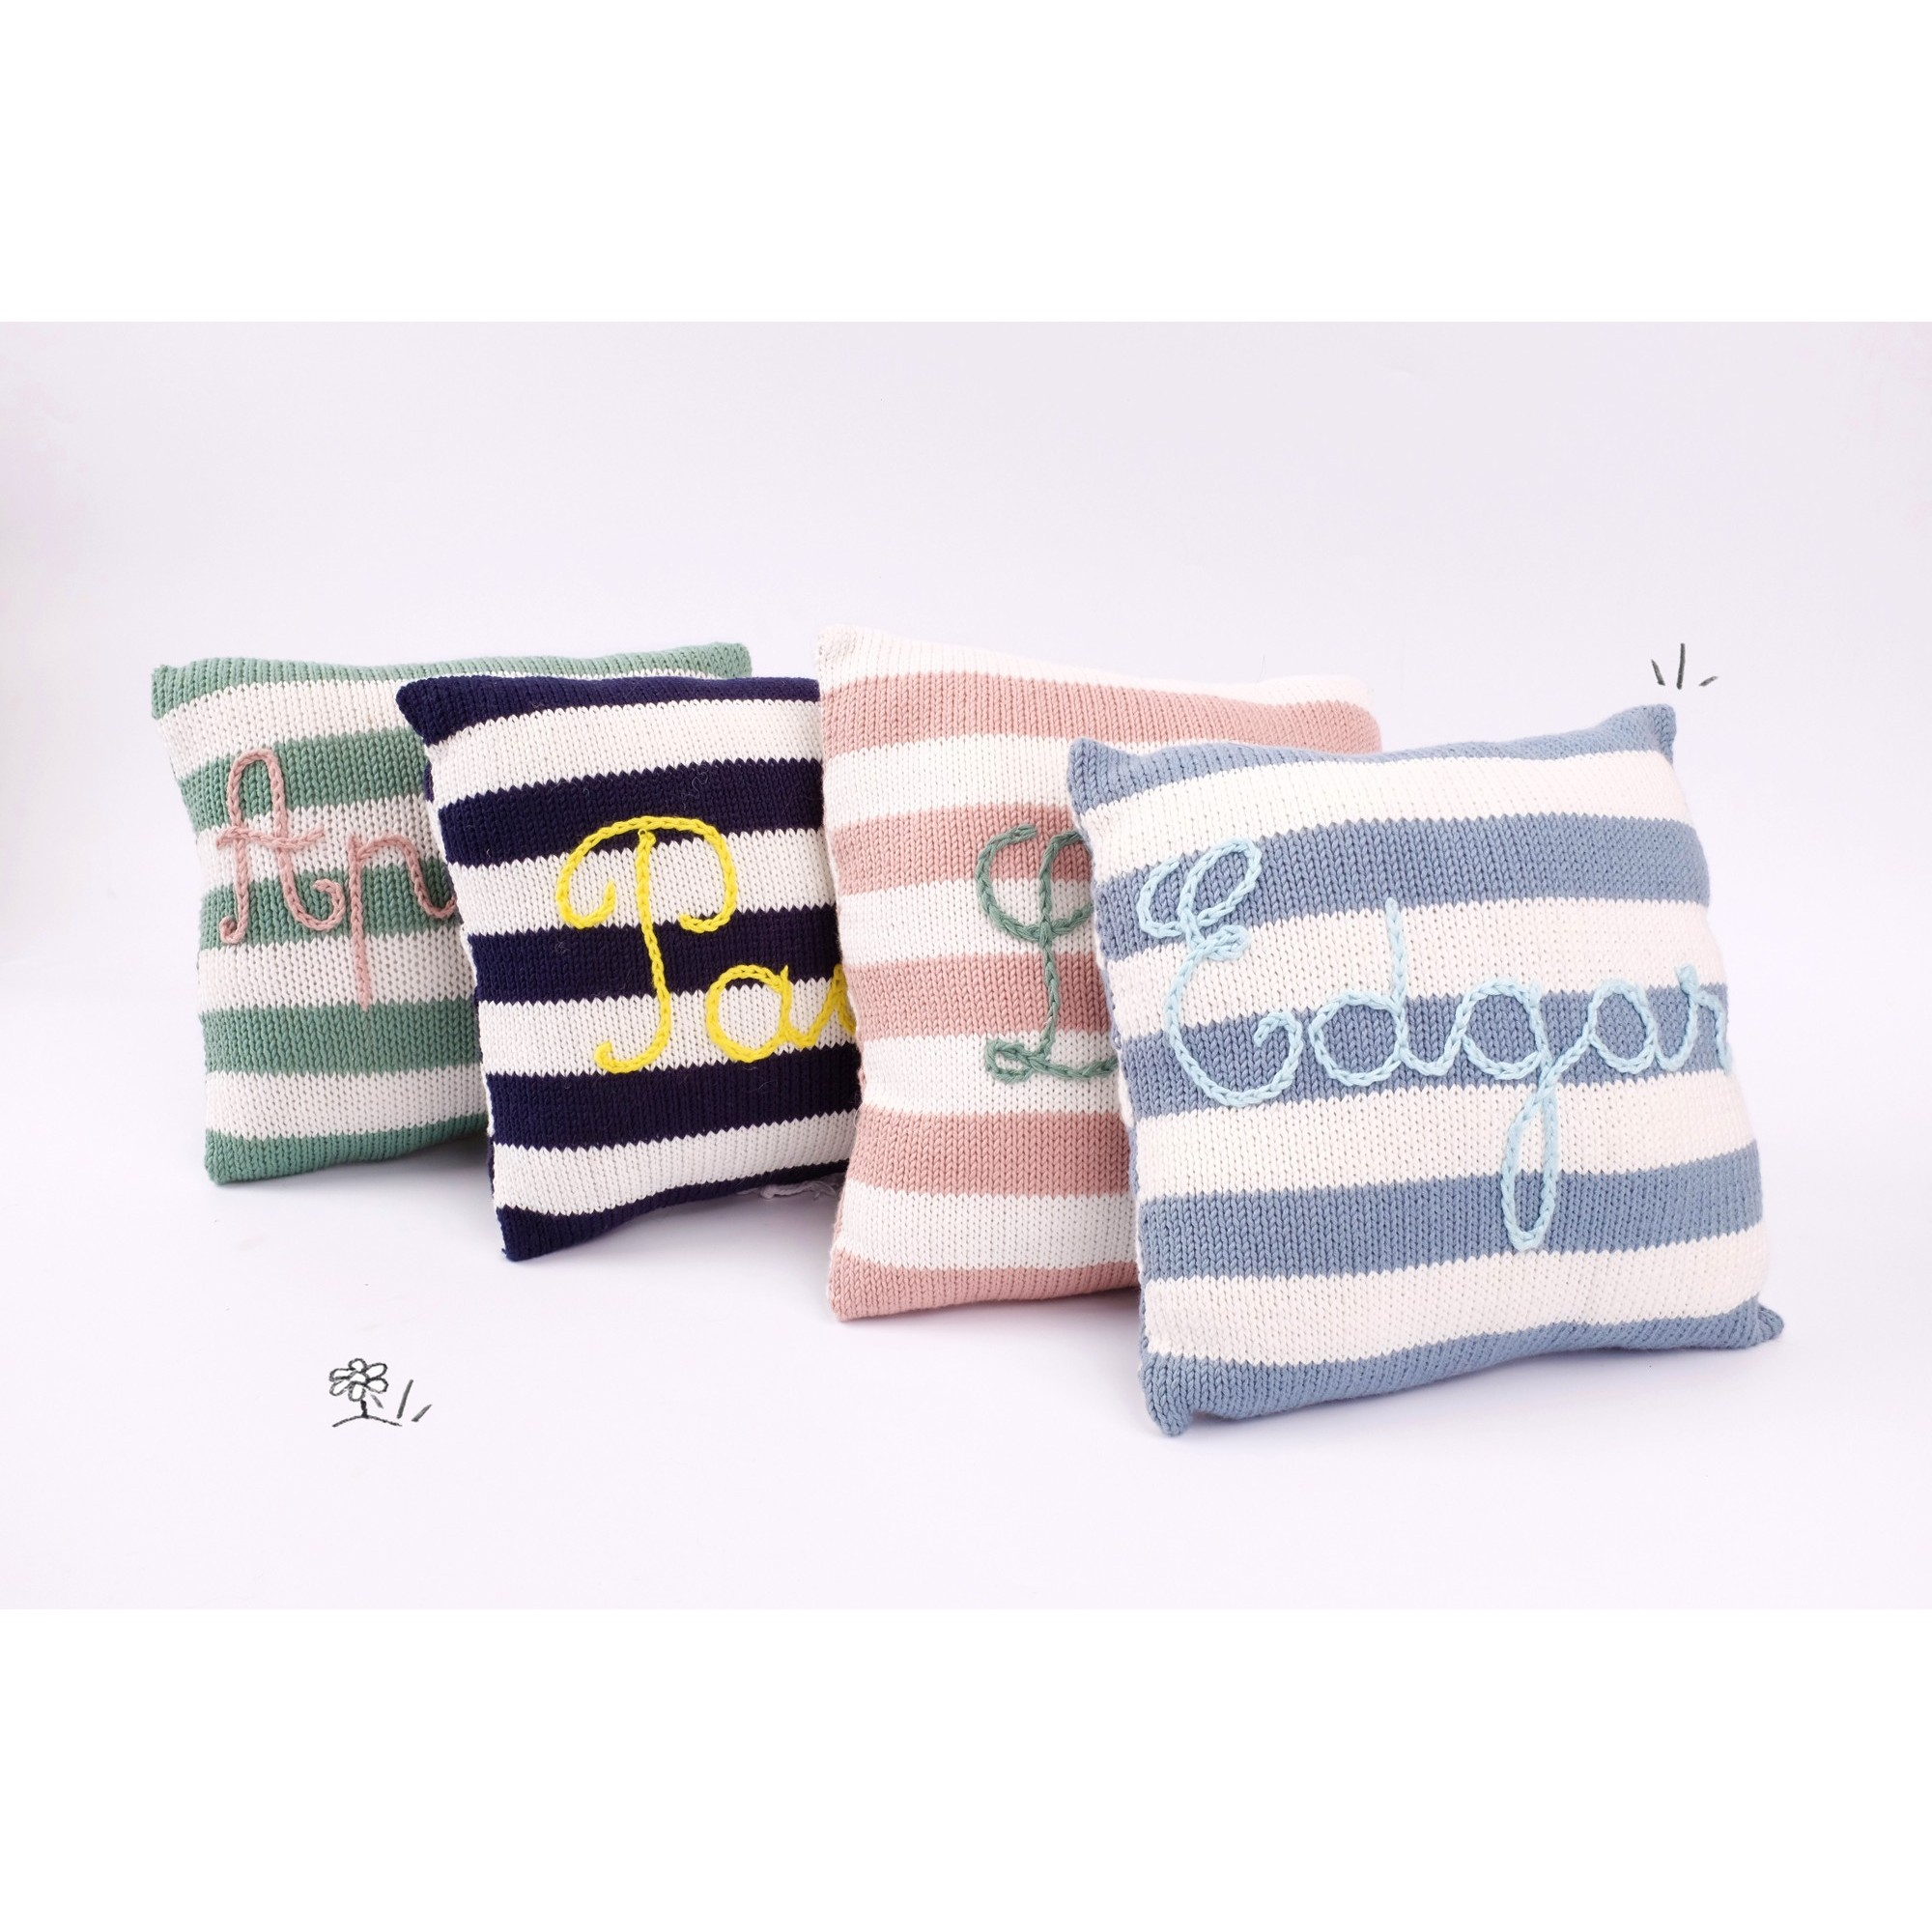 Mini customizable cushions of different colors